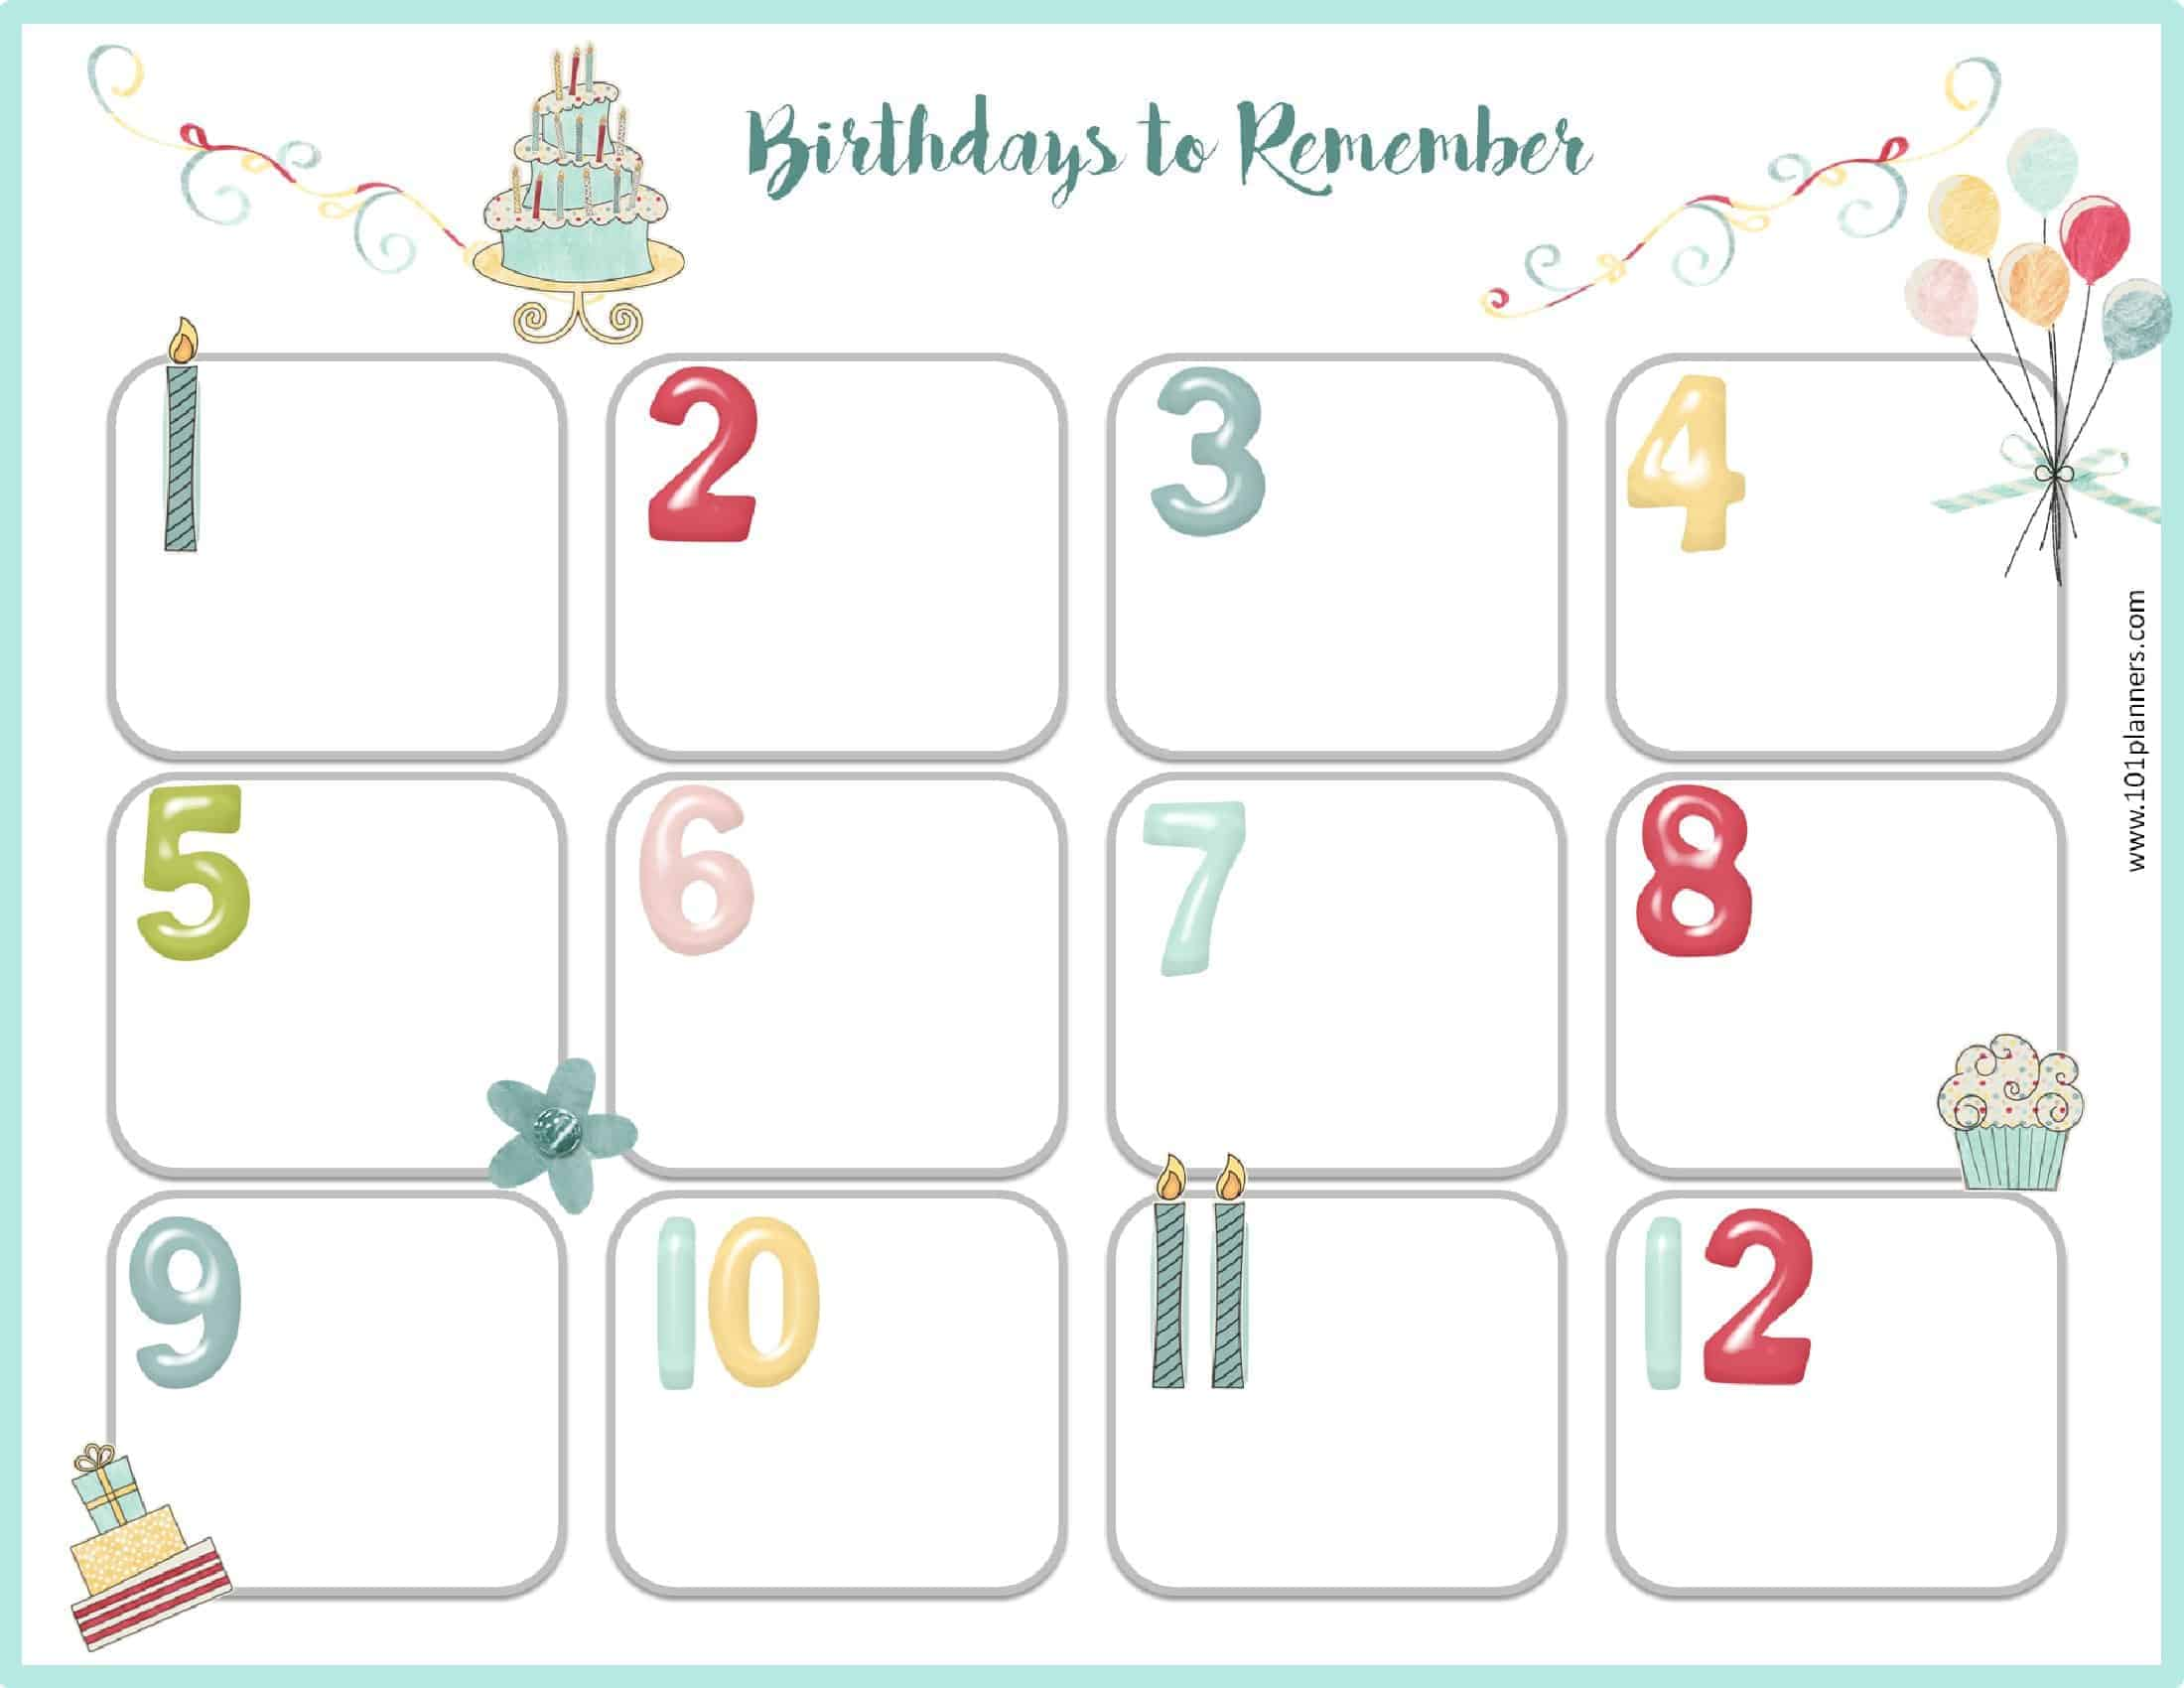 ... addition to the birthday calendars below we also offer a birthday list